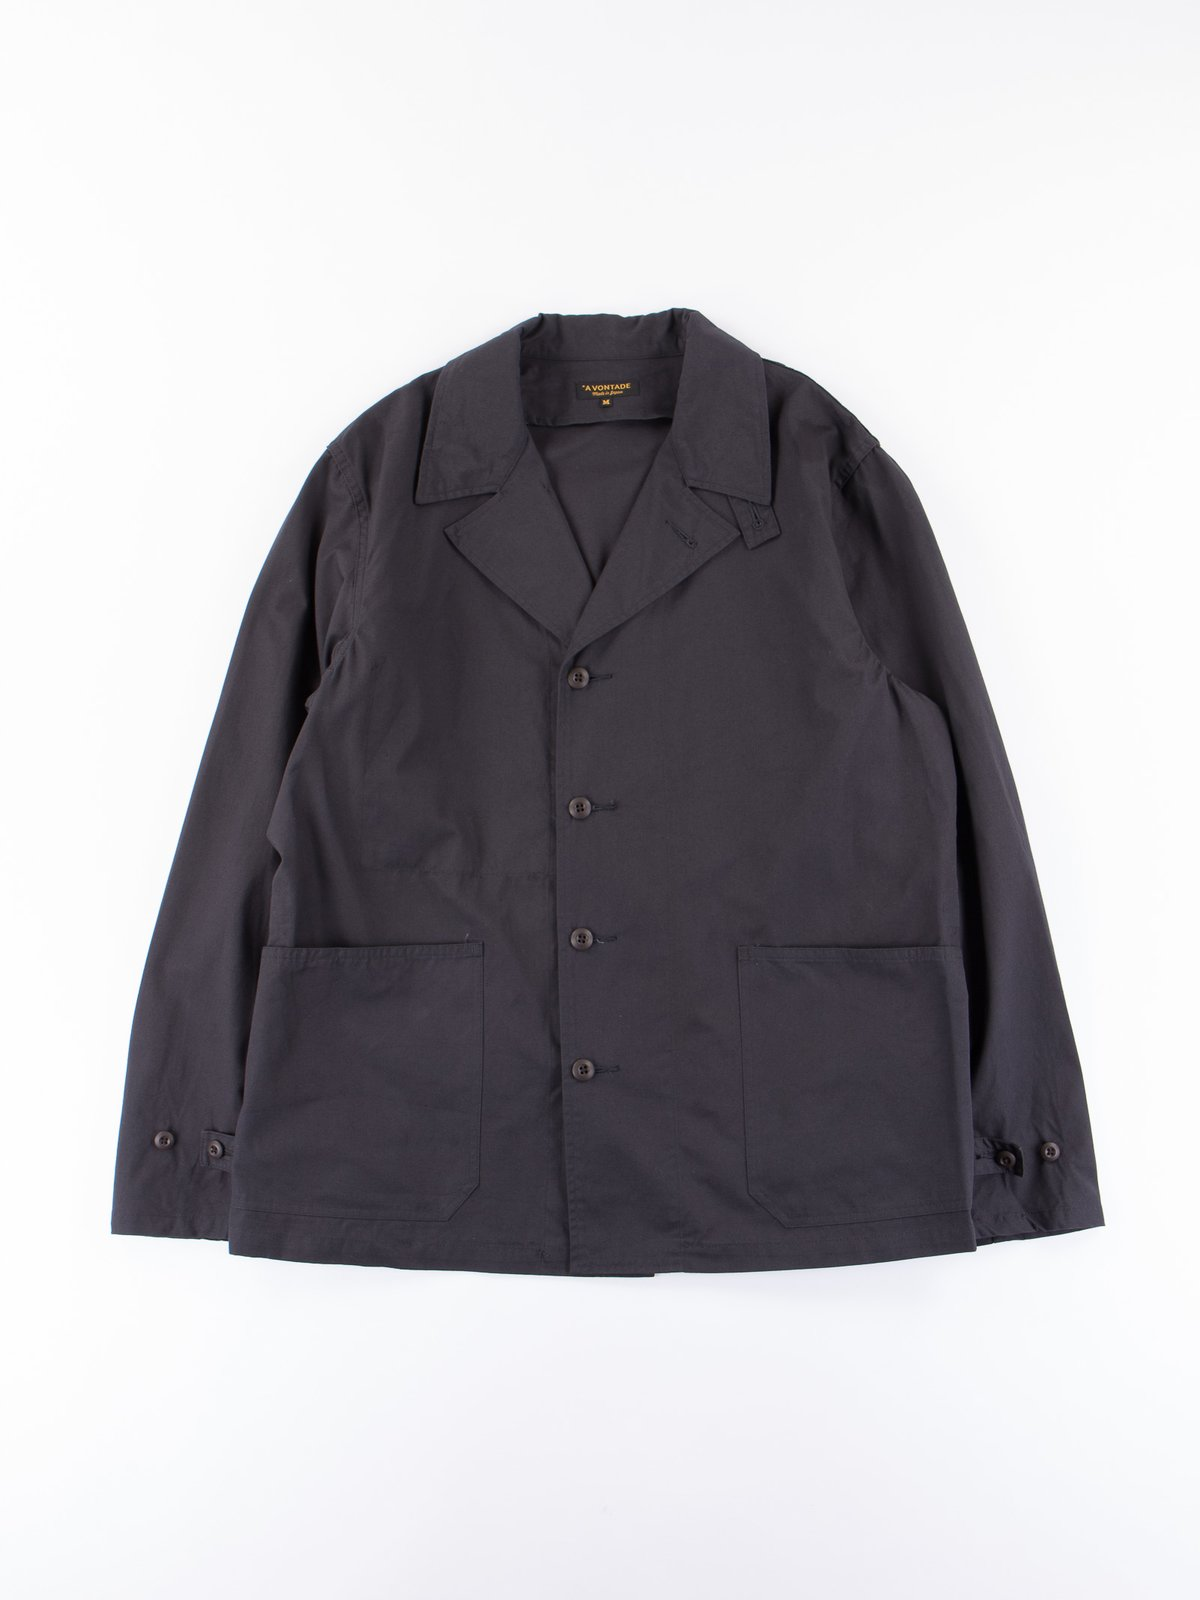 Fade Black Utility Coverall Jacket - Image 1